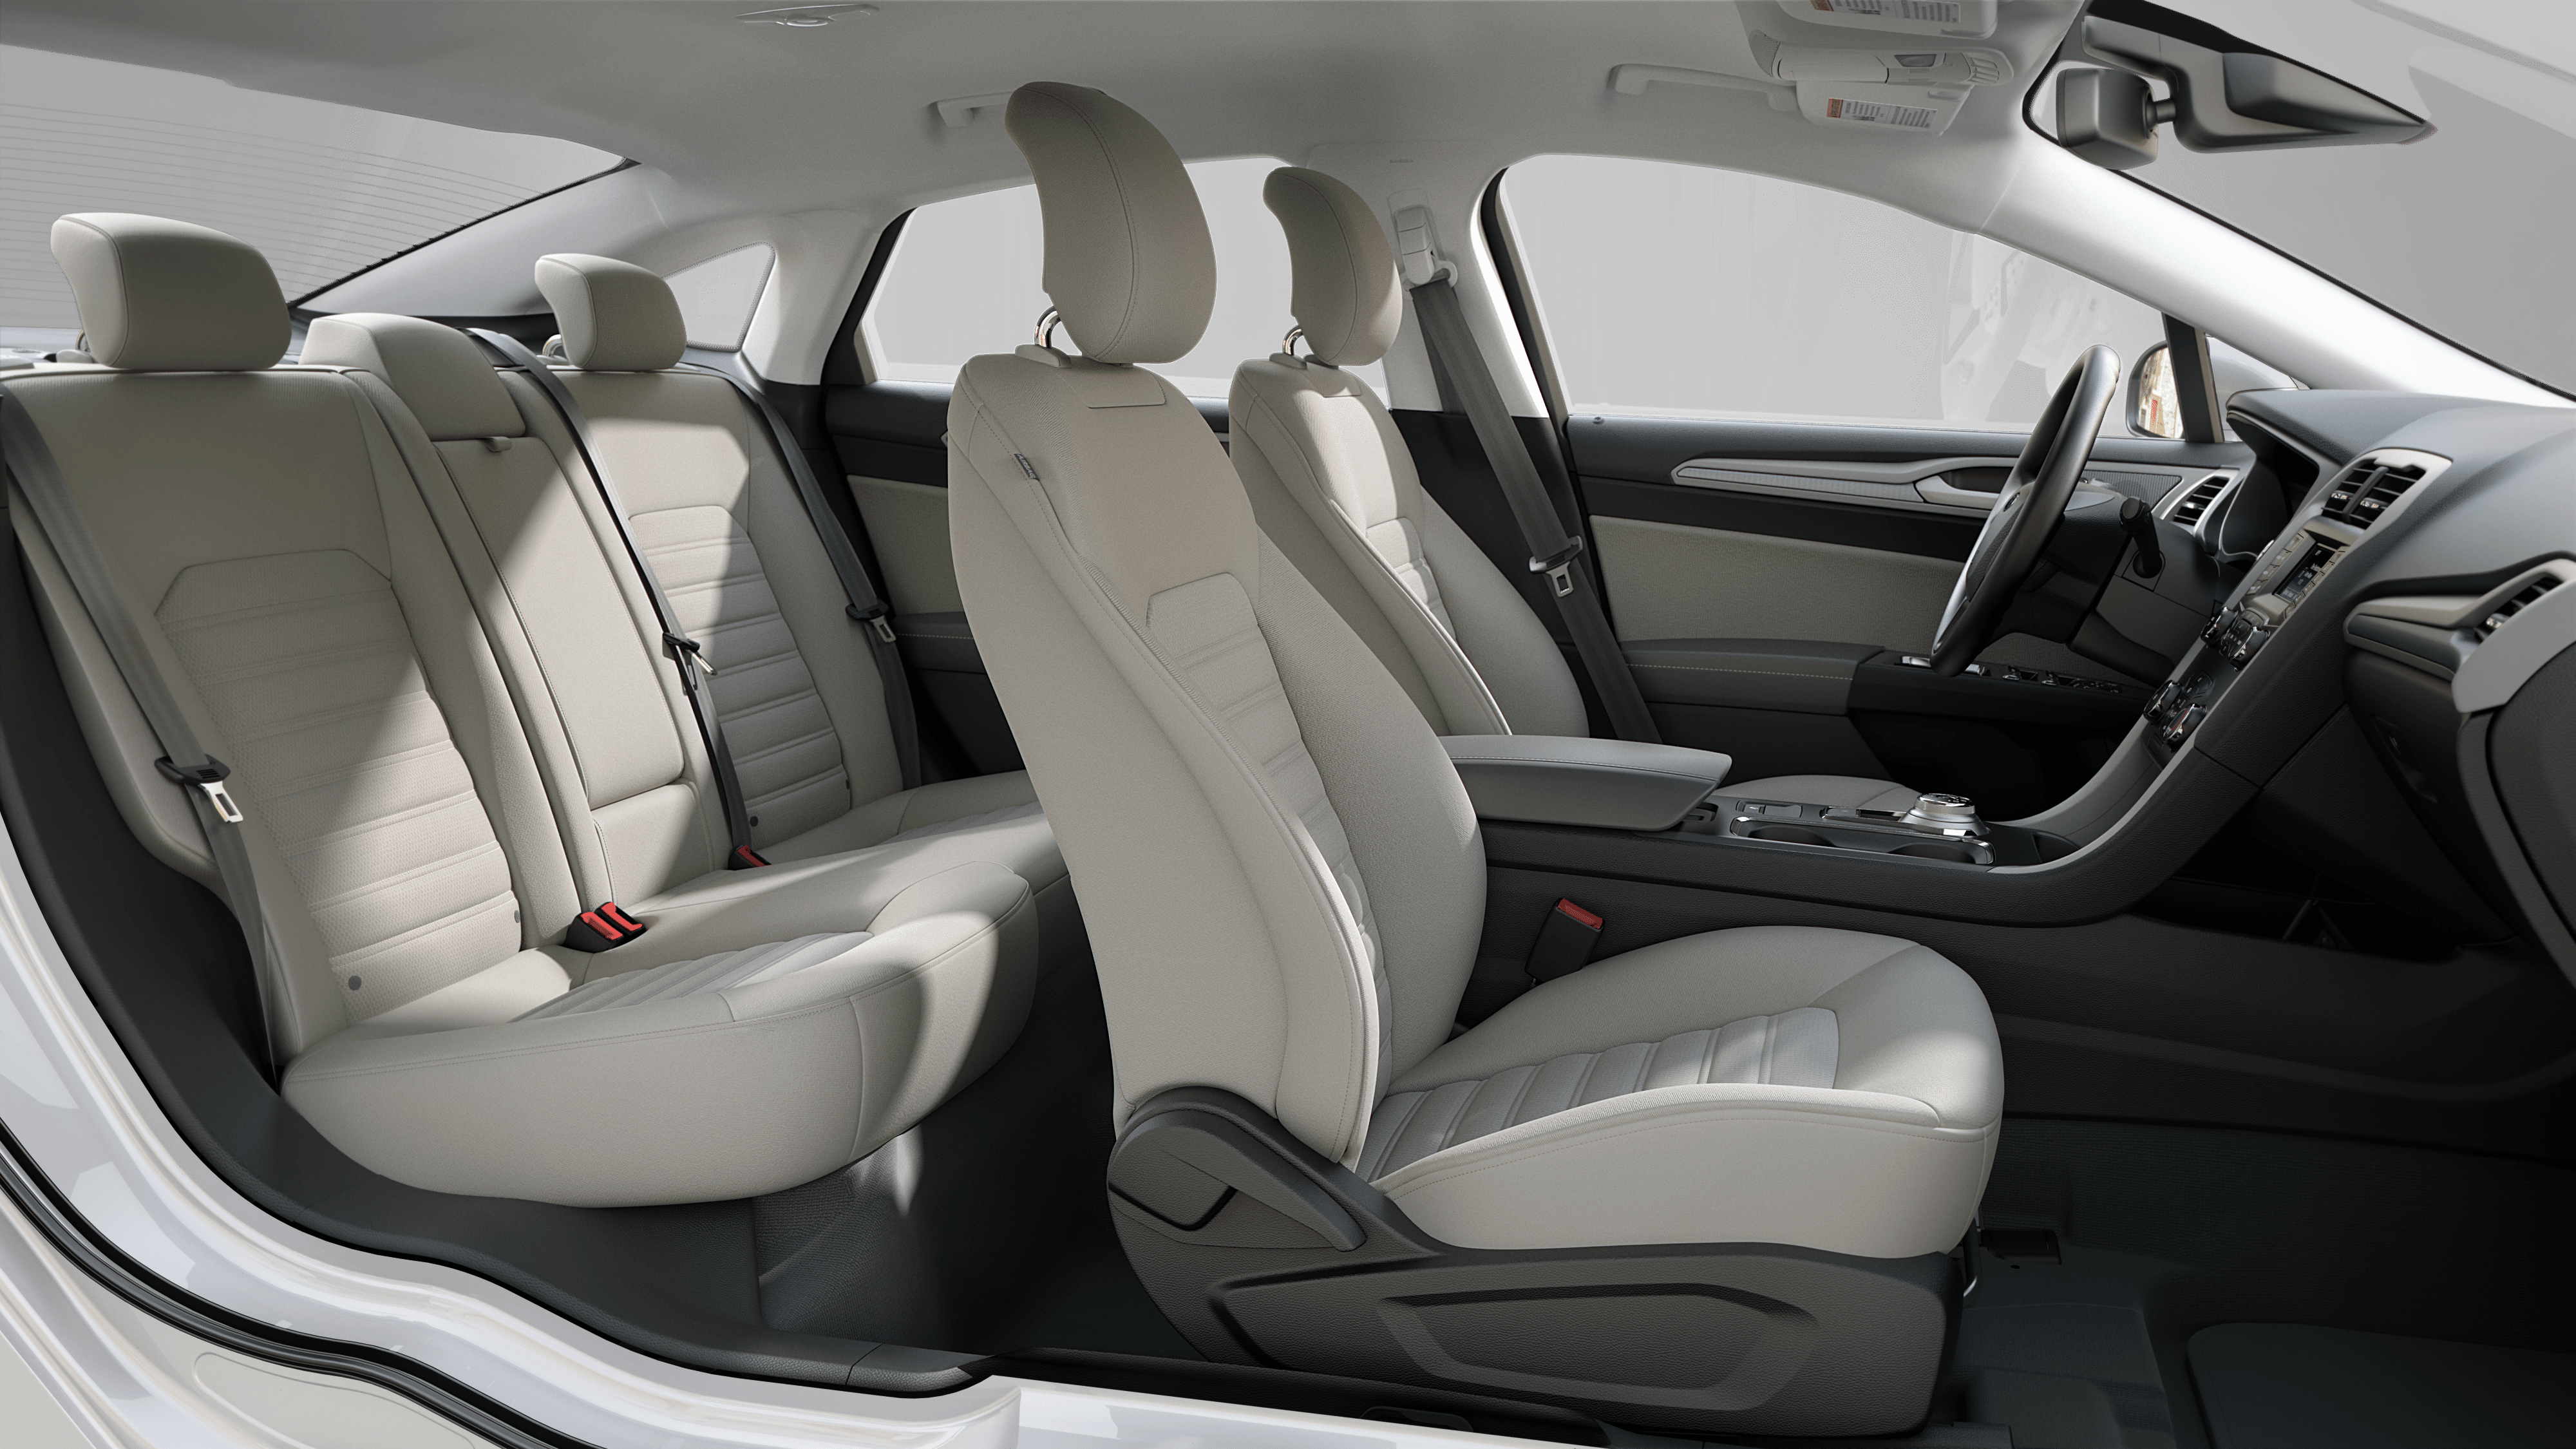 2019 Ford Fusion for sale in Sikeston - 3FA6P0G77KR102087